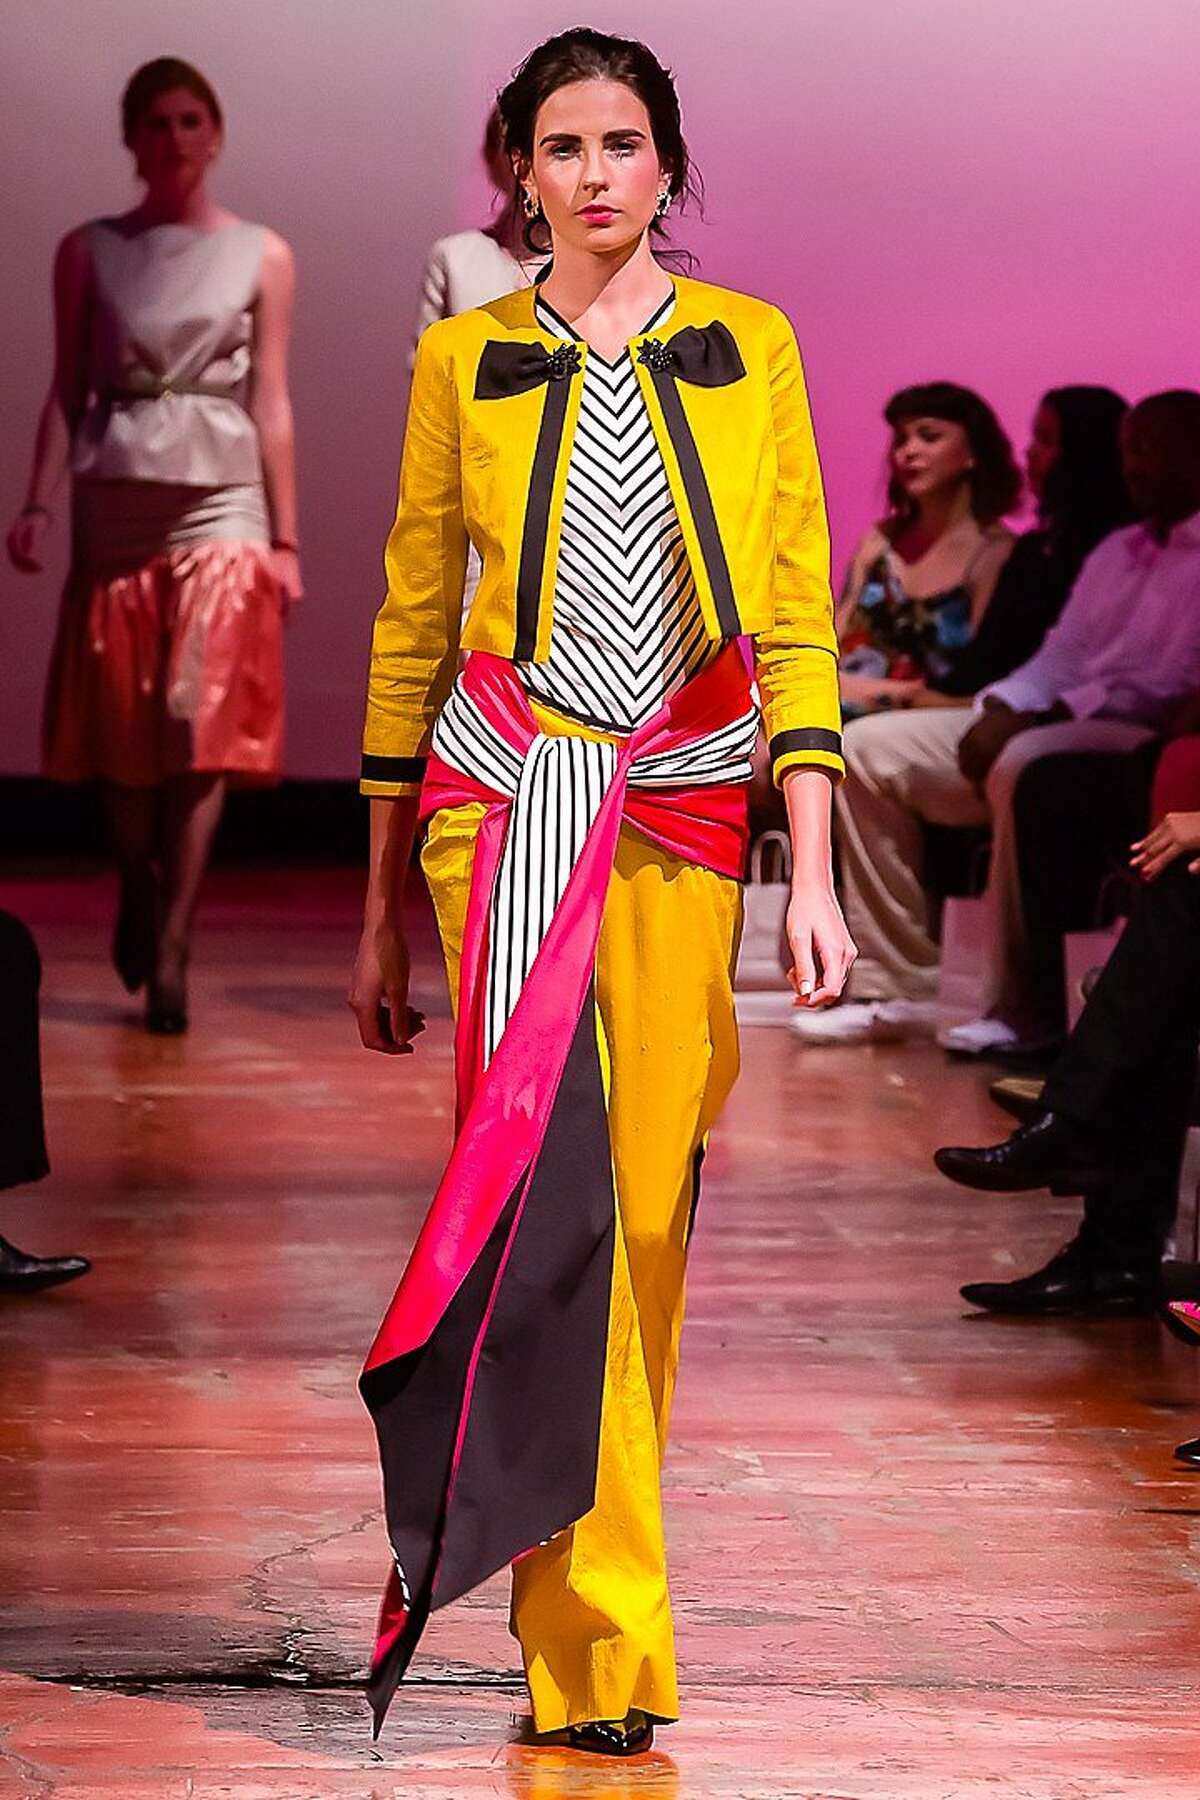 A design by Lauren Barisic at the Art Institute of California - San Francisco's annual fashion show June 14.